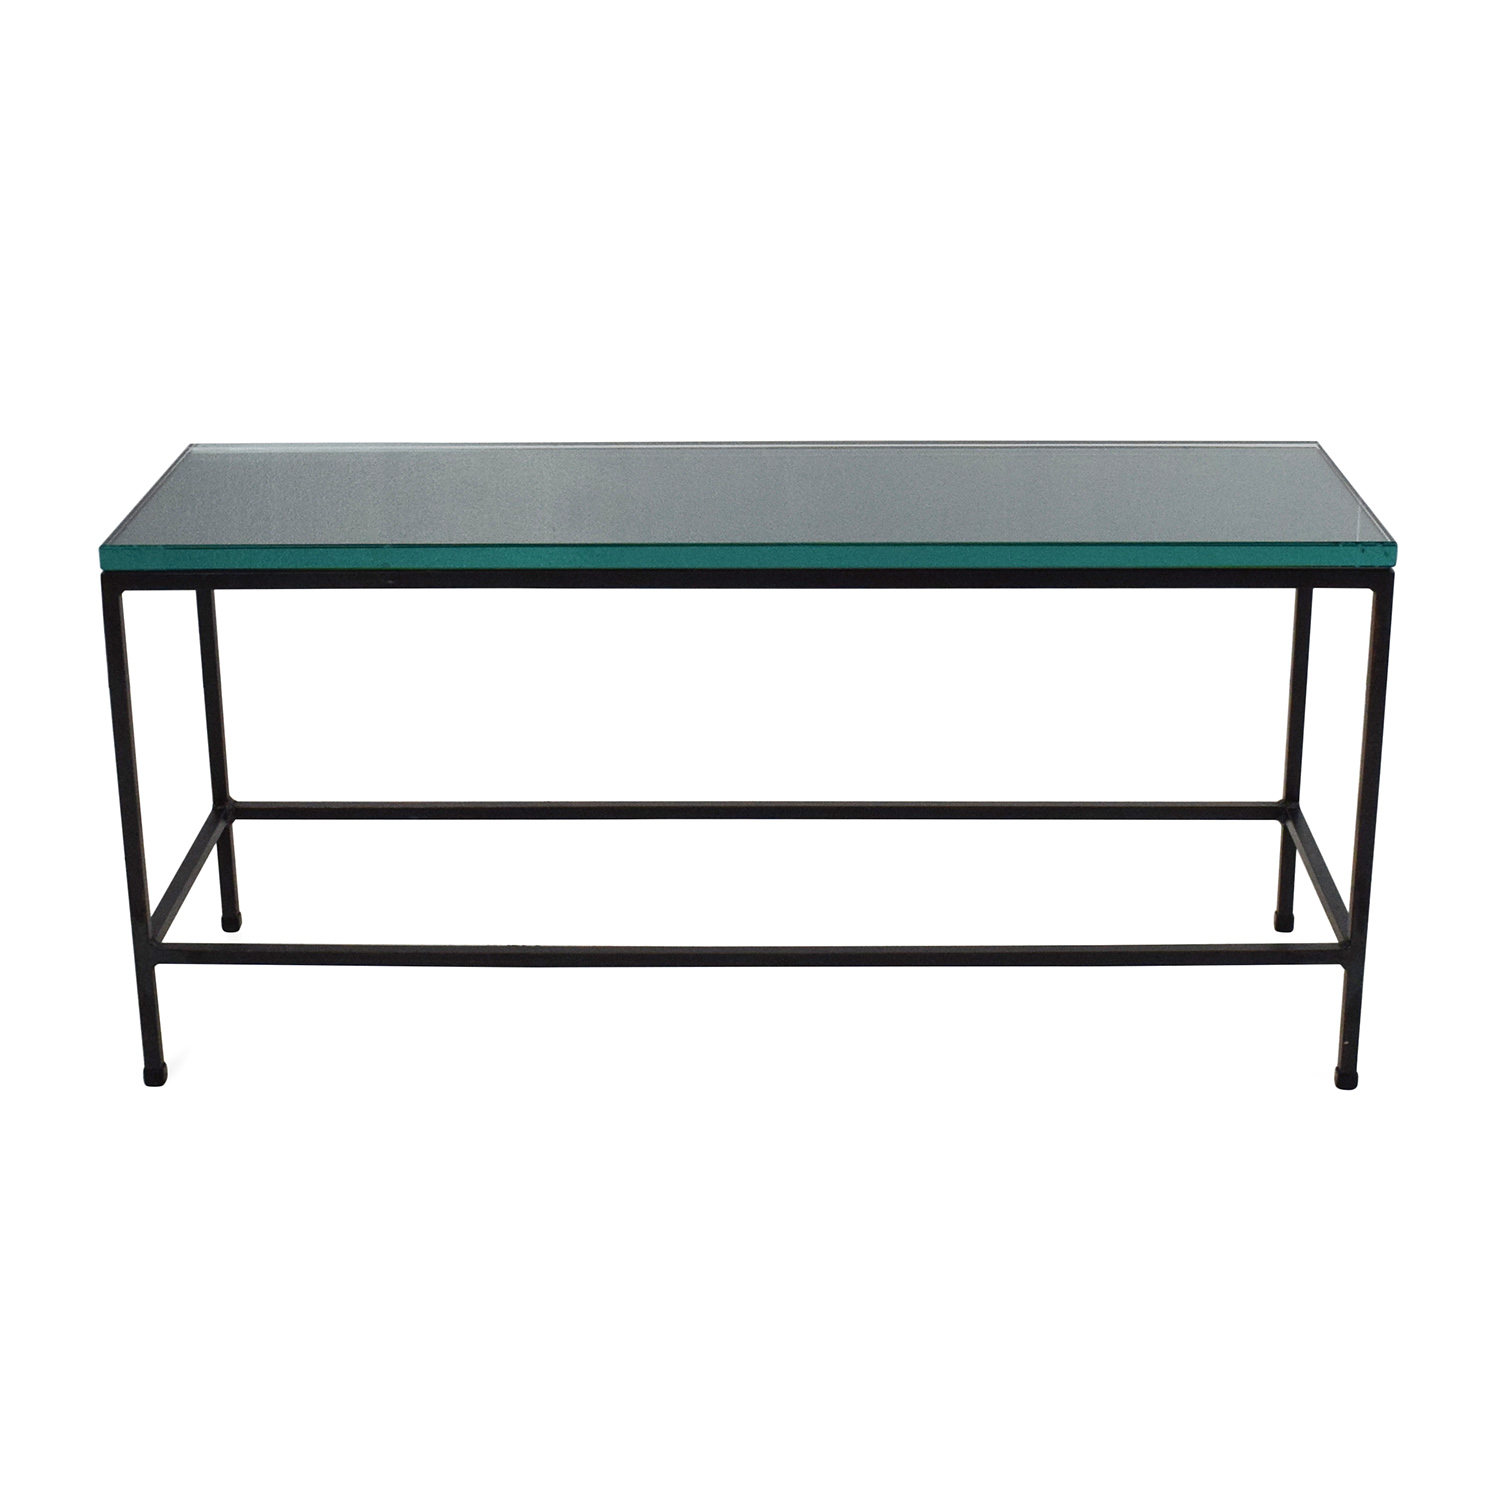 Cb2 Coffee Table.80 Off Cb2 Cb2 Glass Top Coffee Table Tables